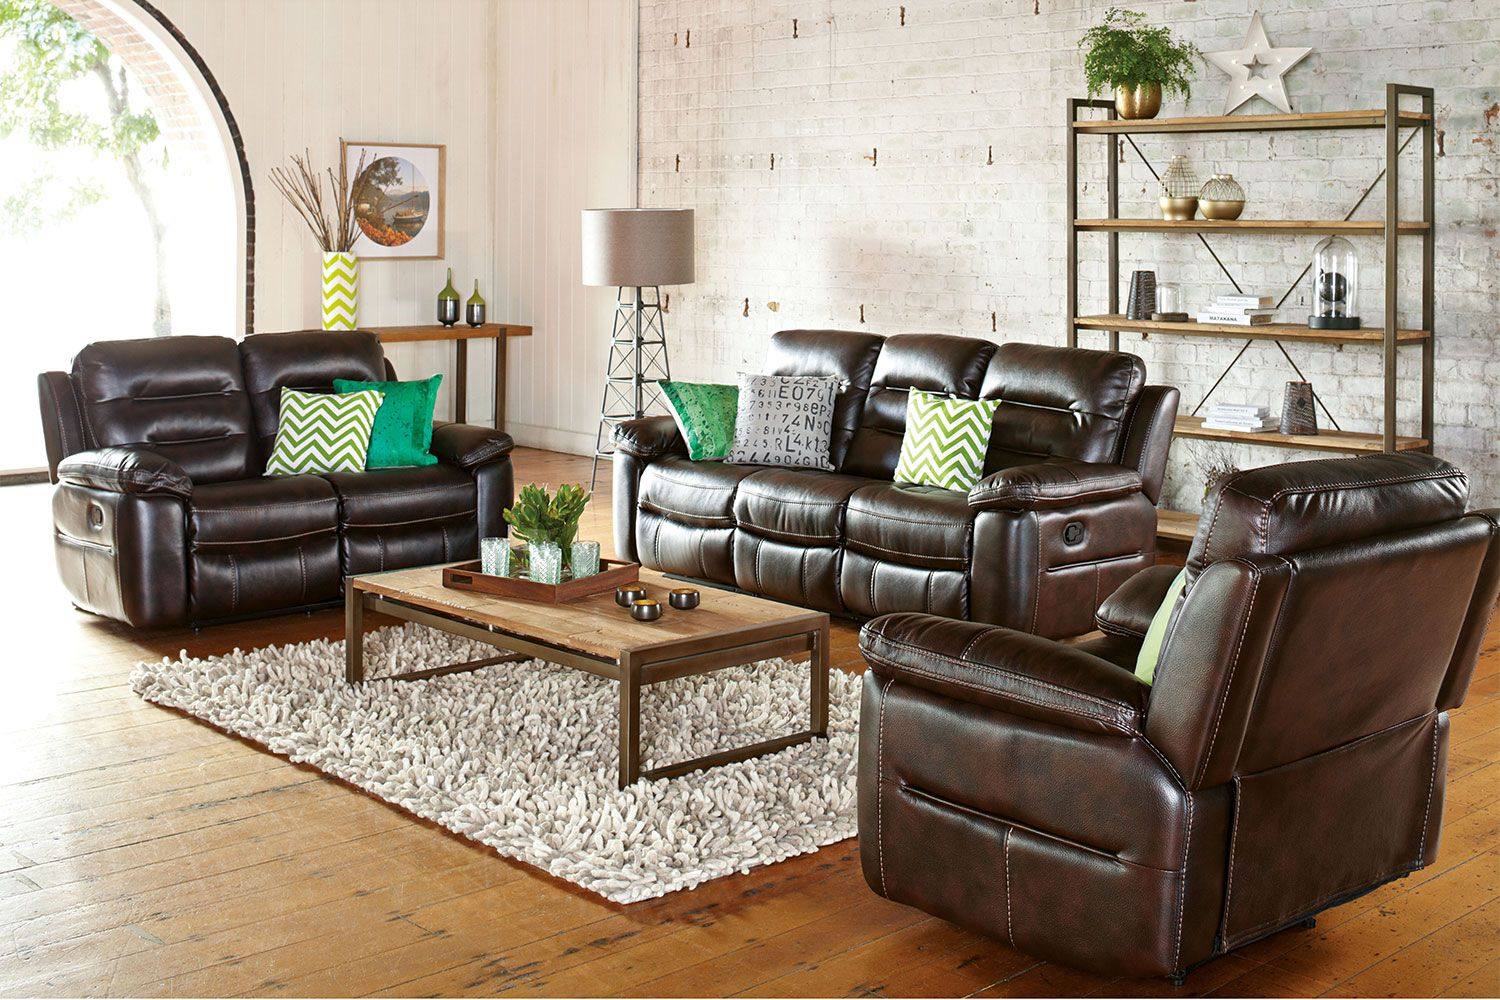 The Somerset Lounge consists of a 3 seater sofa with 2 built in ...